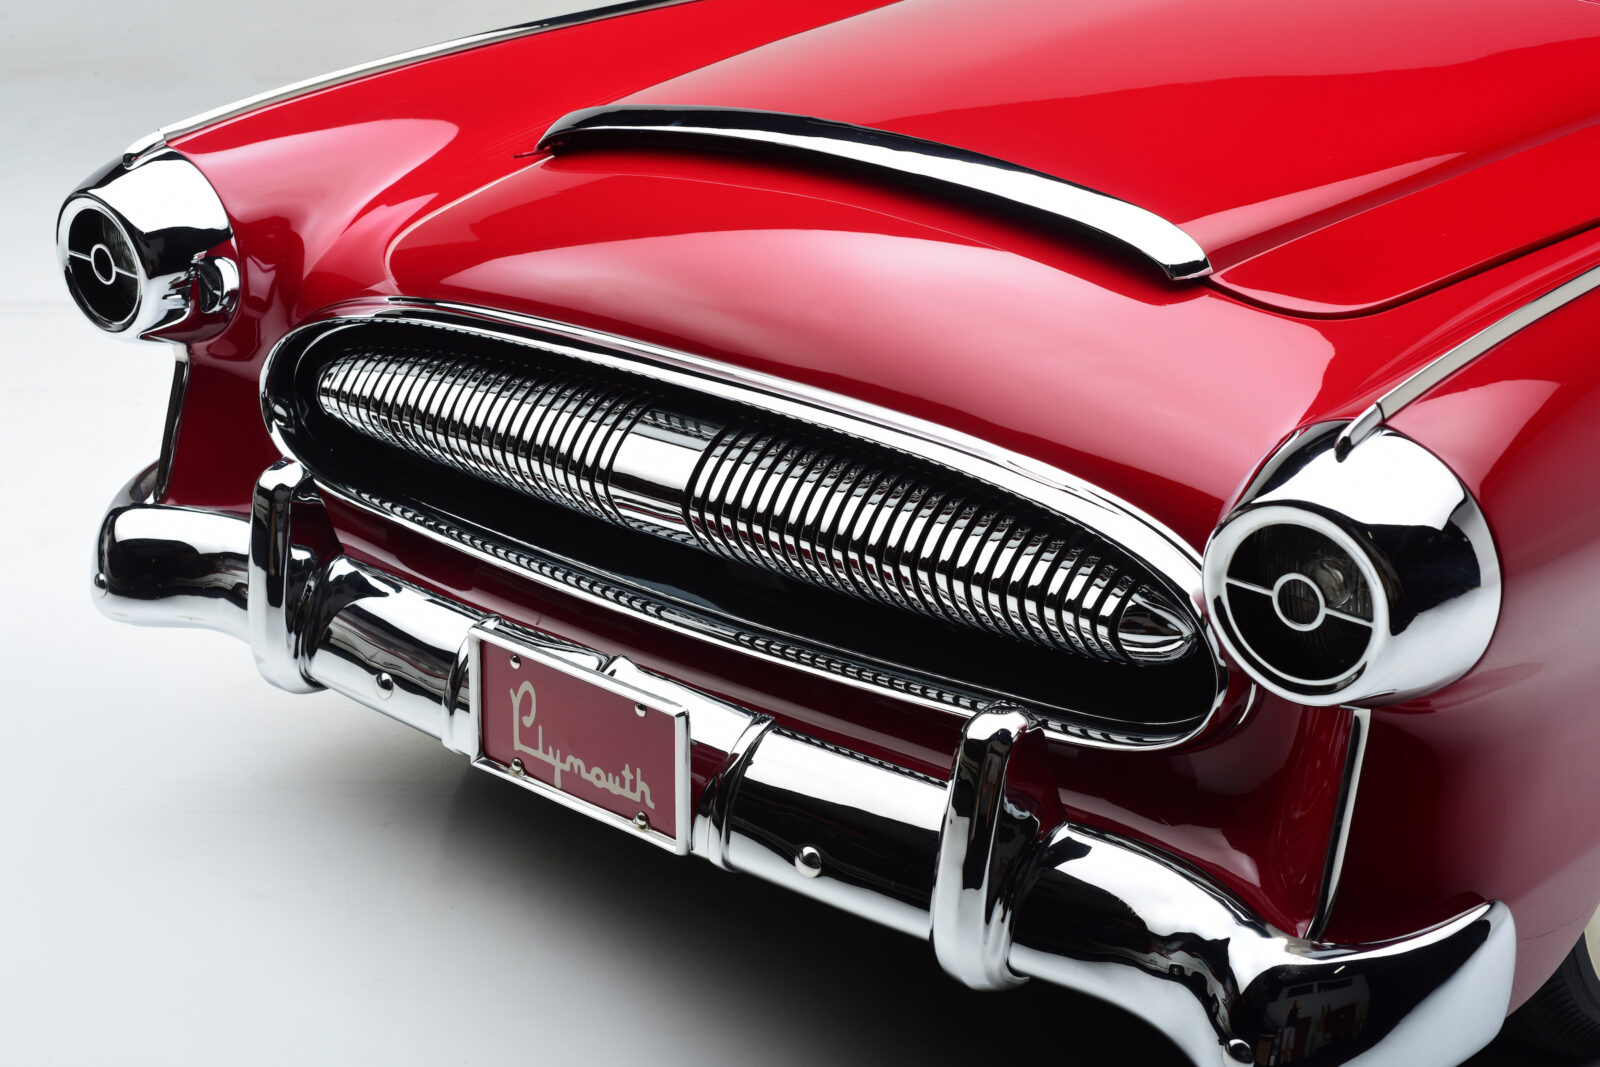 Plymouth Belmont Concept Car Grill 1600x1067 - 1954 Plymouth Belmont Concept Car